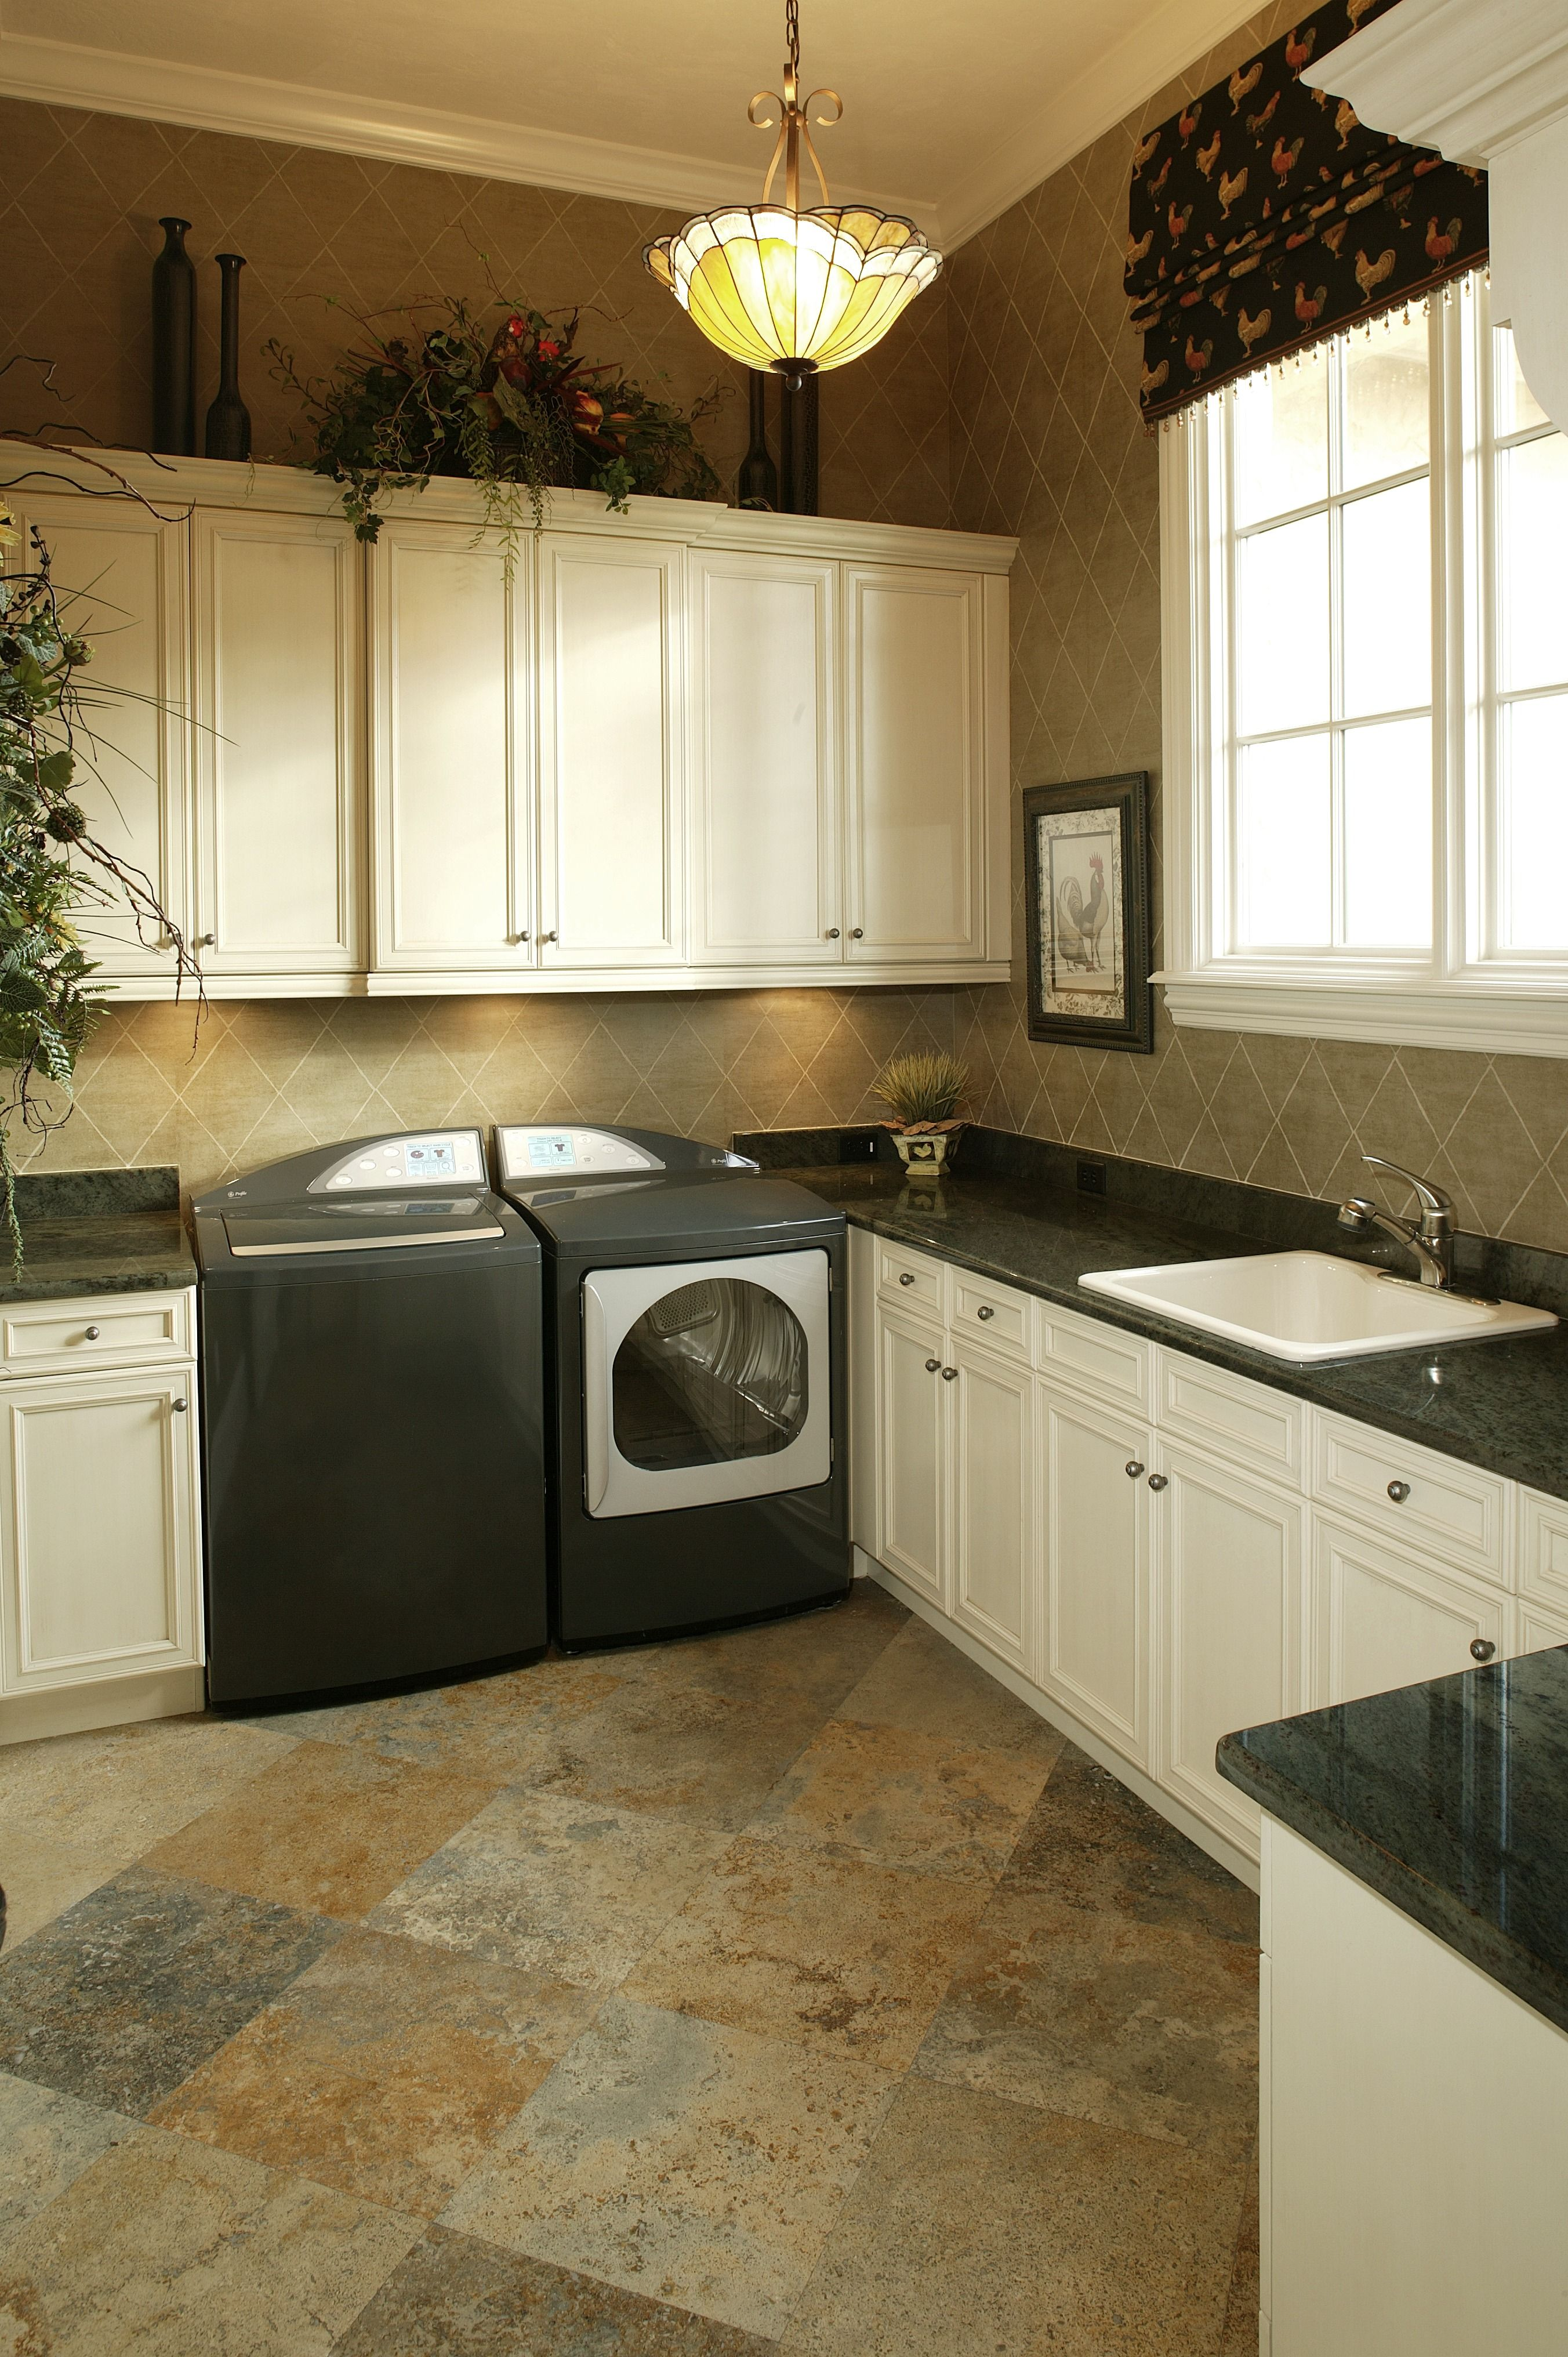 A Green Marble Countertop And Matching Appliances The Floor Is A